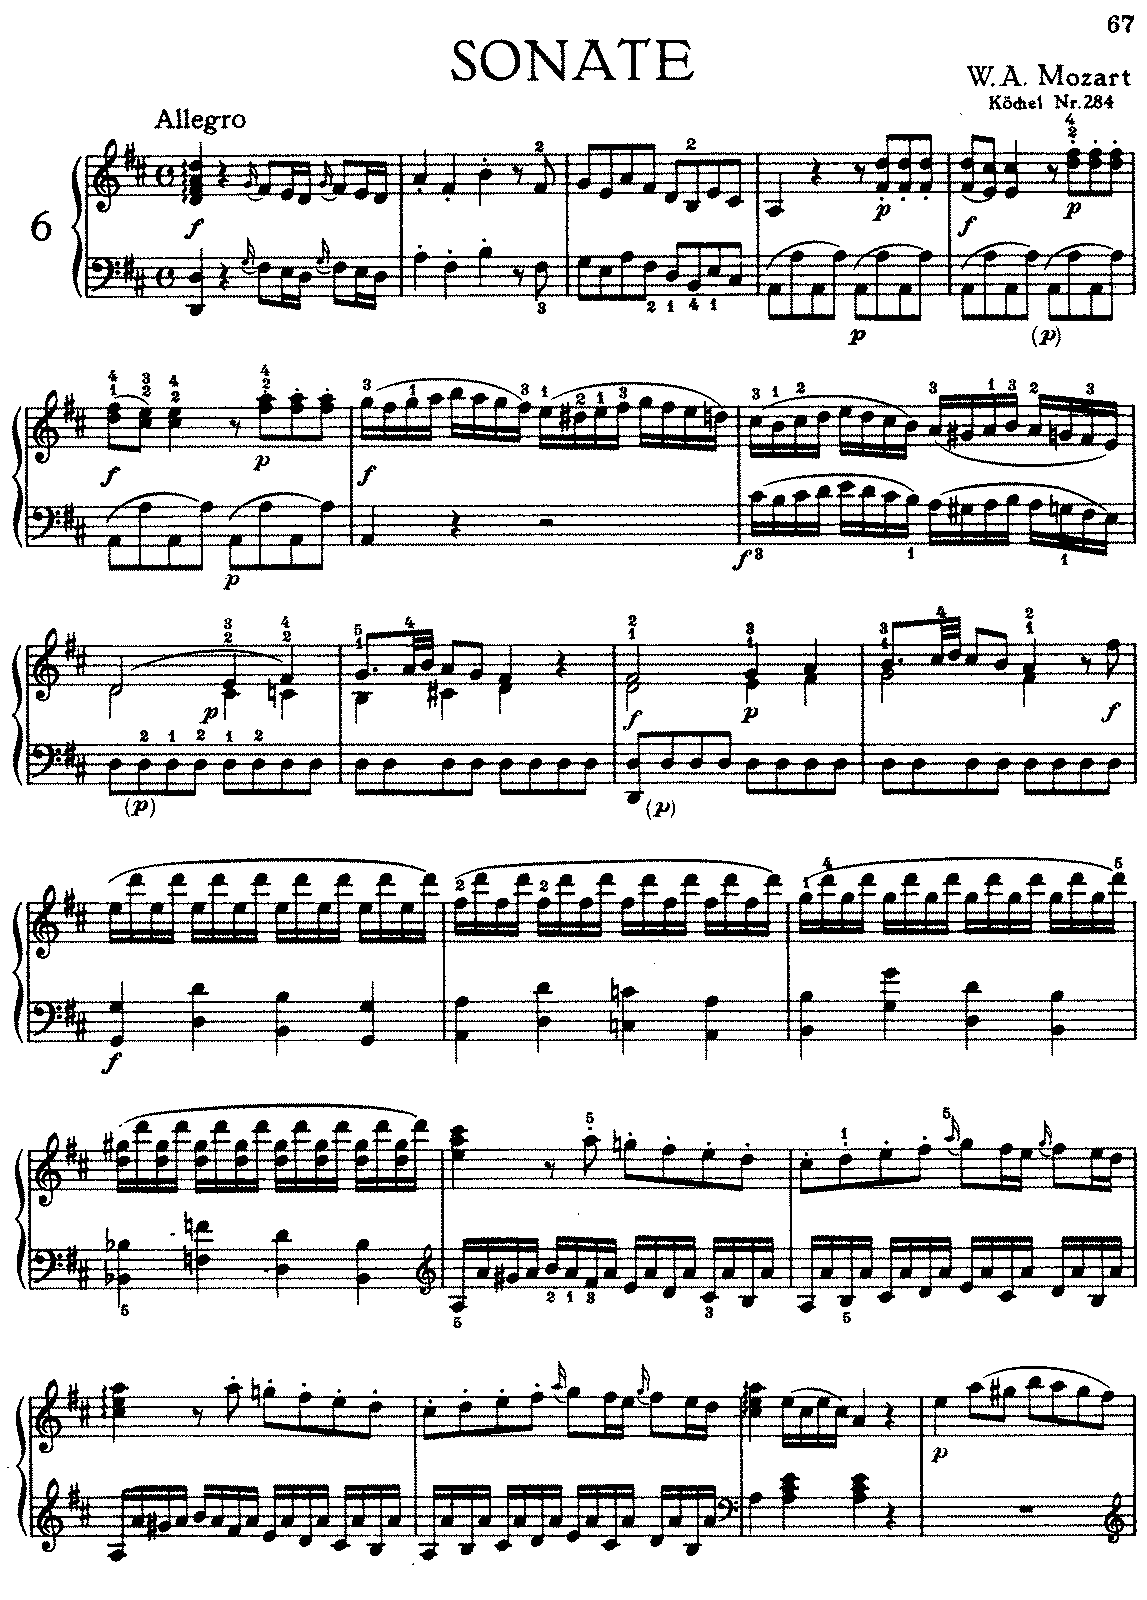 mozart piano sonata k 283 Wolfgang amadeus mozart's piano sonata no 6 in d major, k 284 / 205b, is a sonata in three movements: allegro d major, 4/4 rondeau en polonaise (rondo and.